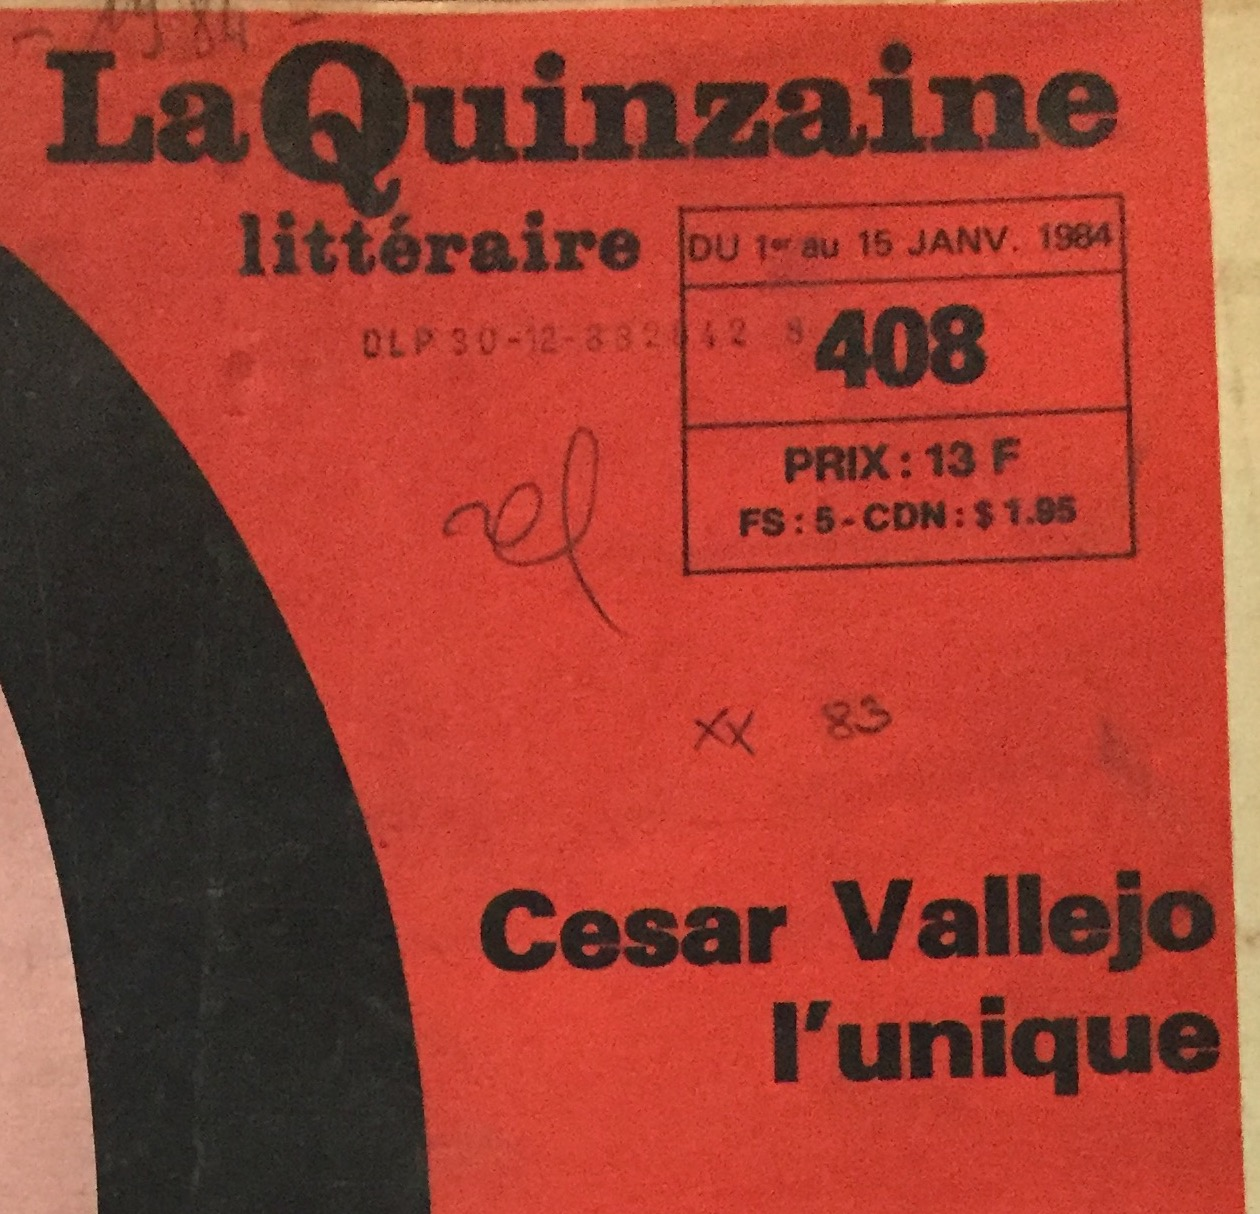 La réception de la poésie de César Vallejo en France